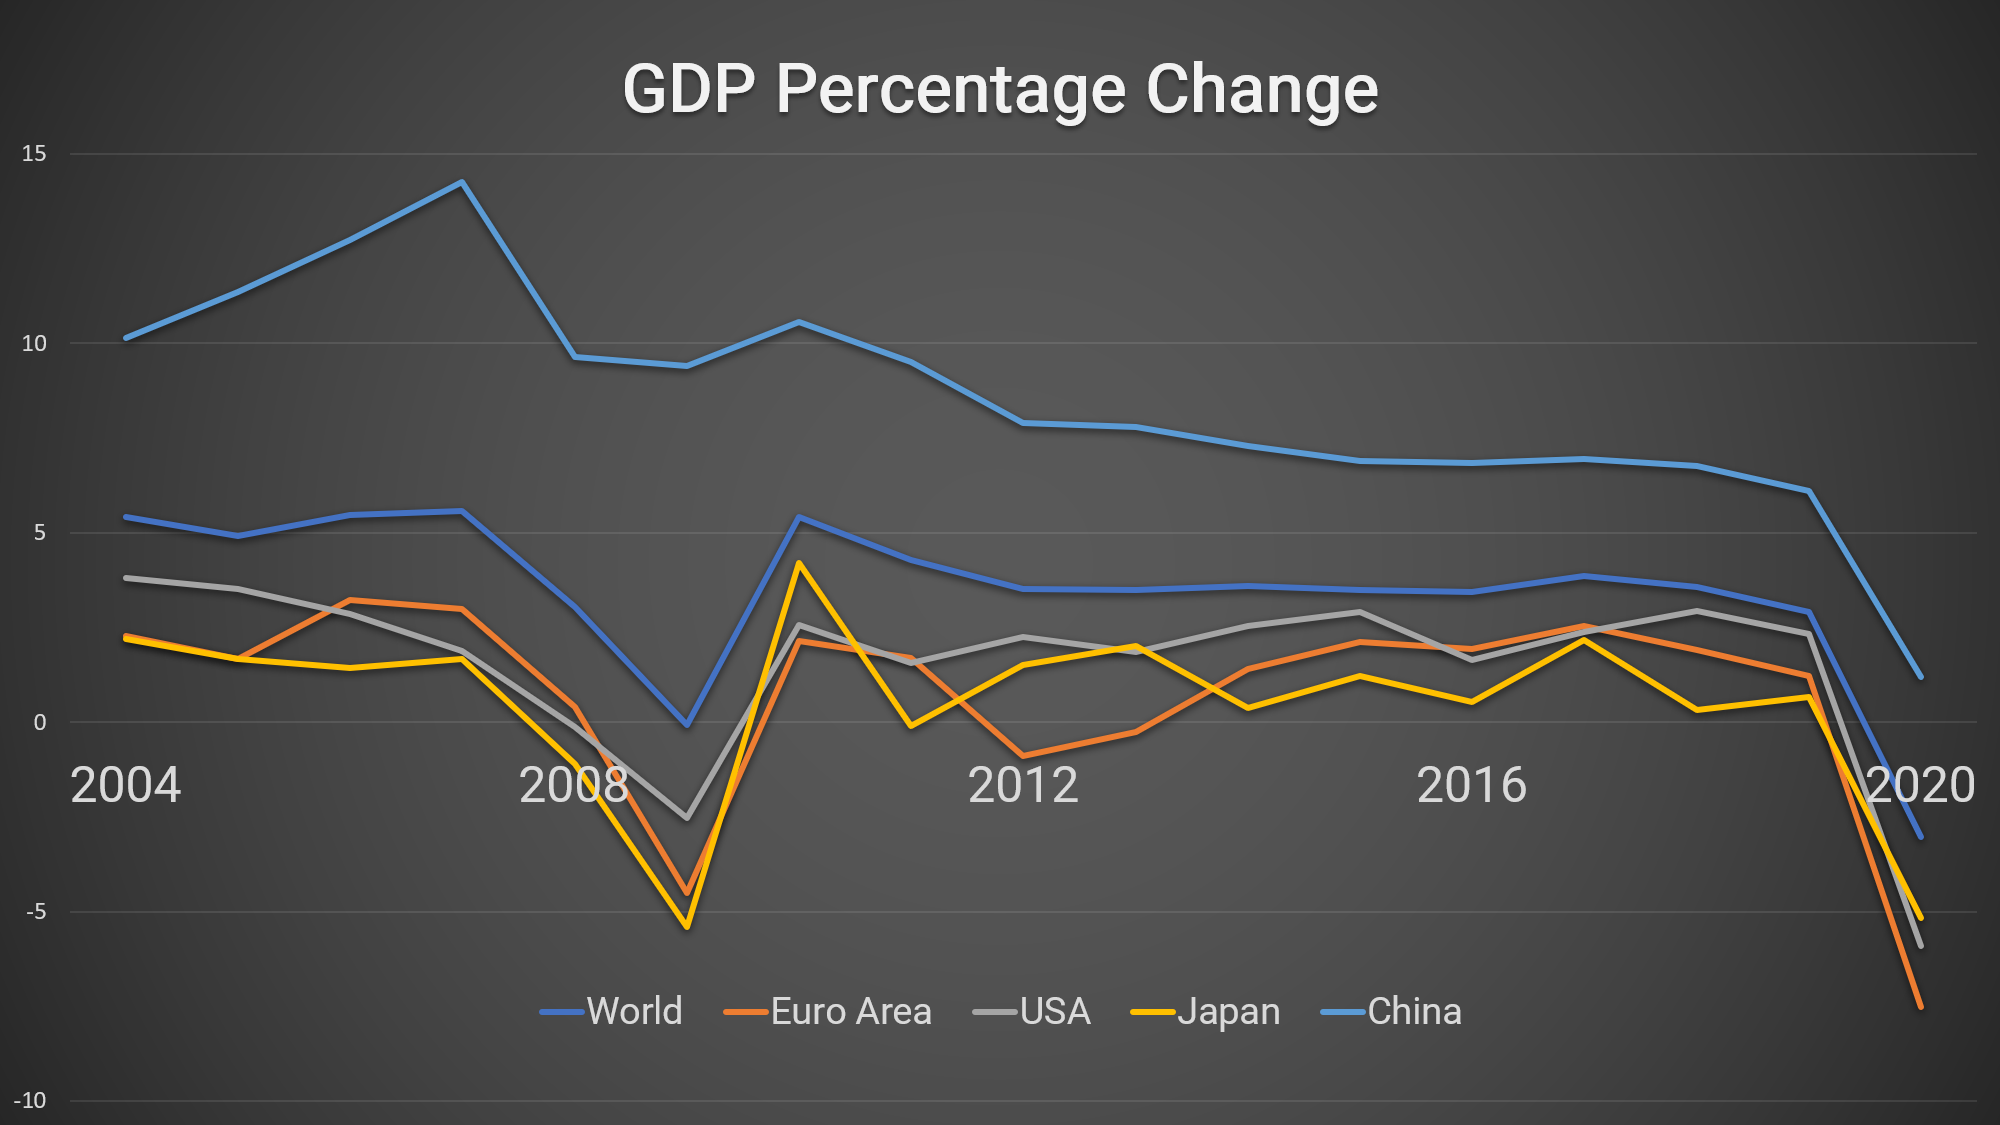 GDP percentage change with predicted figures for 2020 as a result of the coronavirus